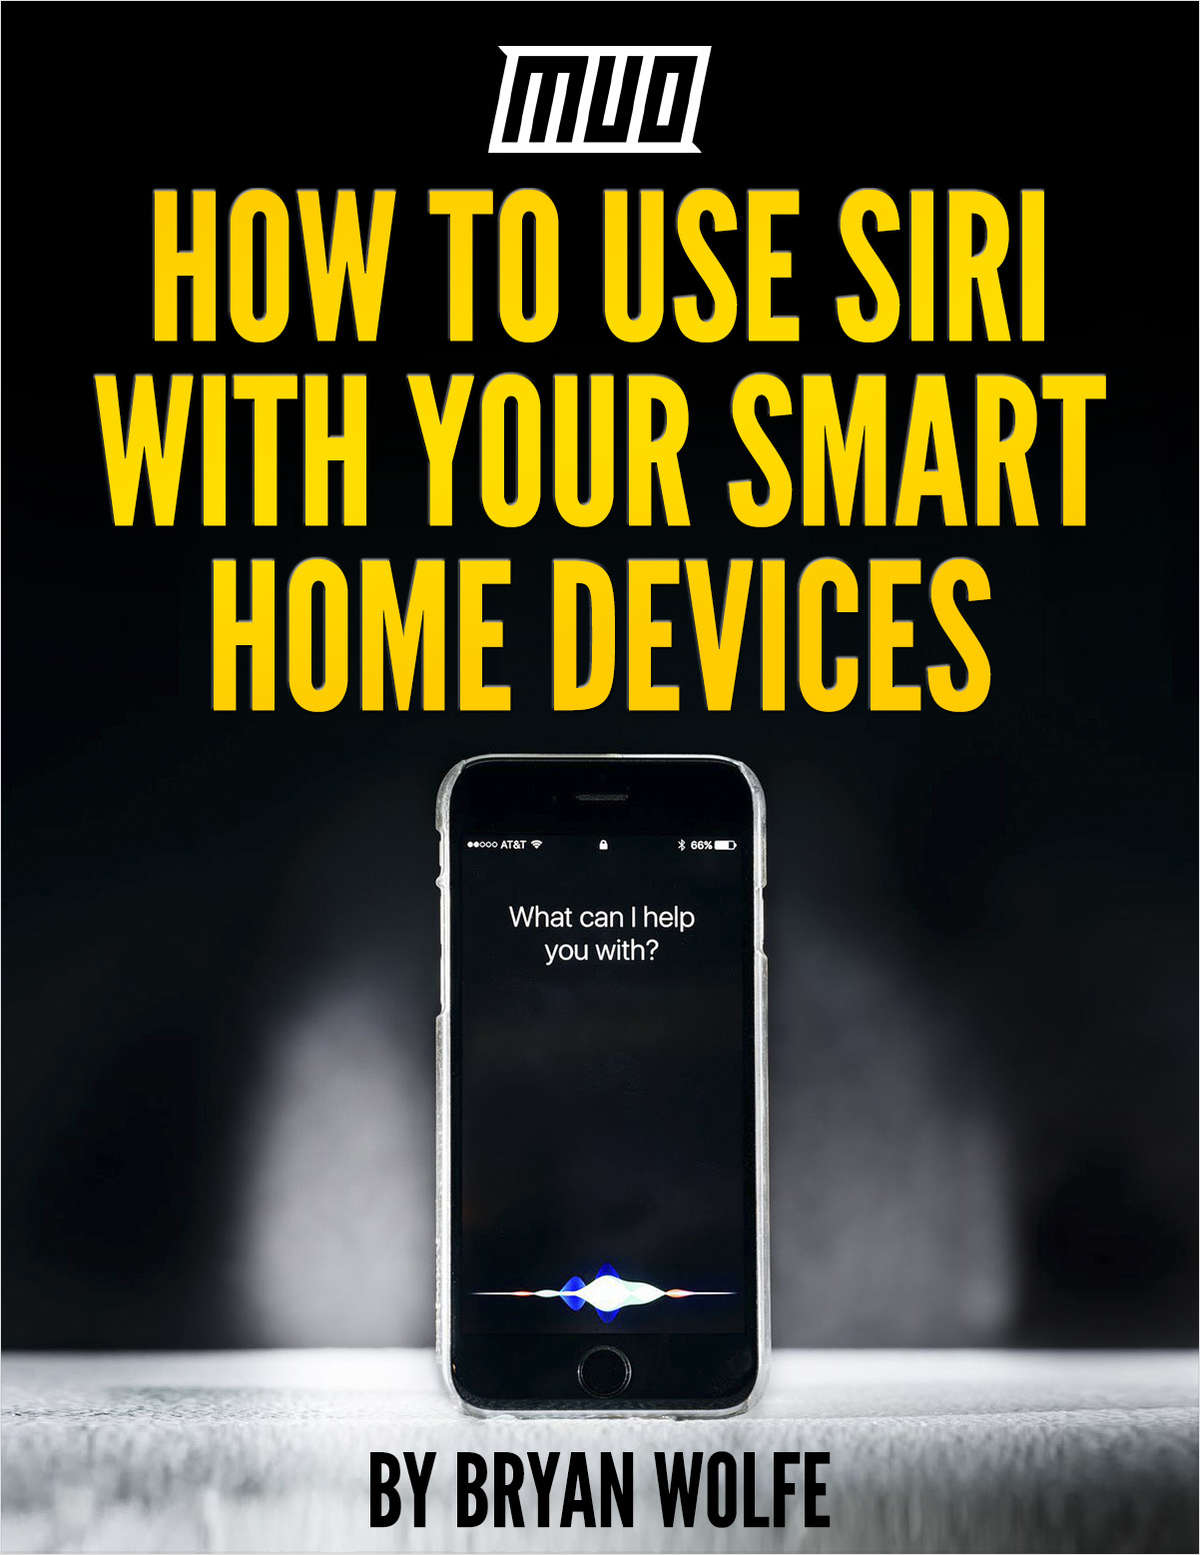 How to Use Siri With Your Smart Home Devices